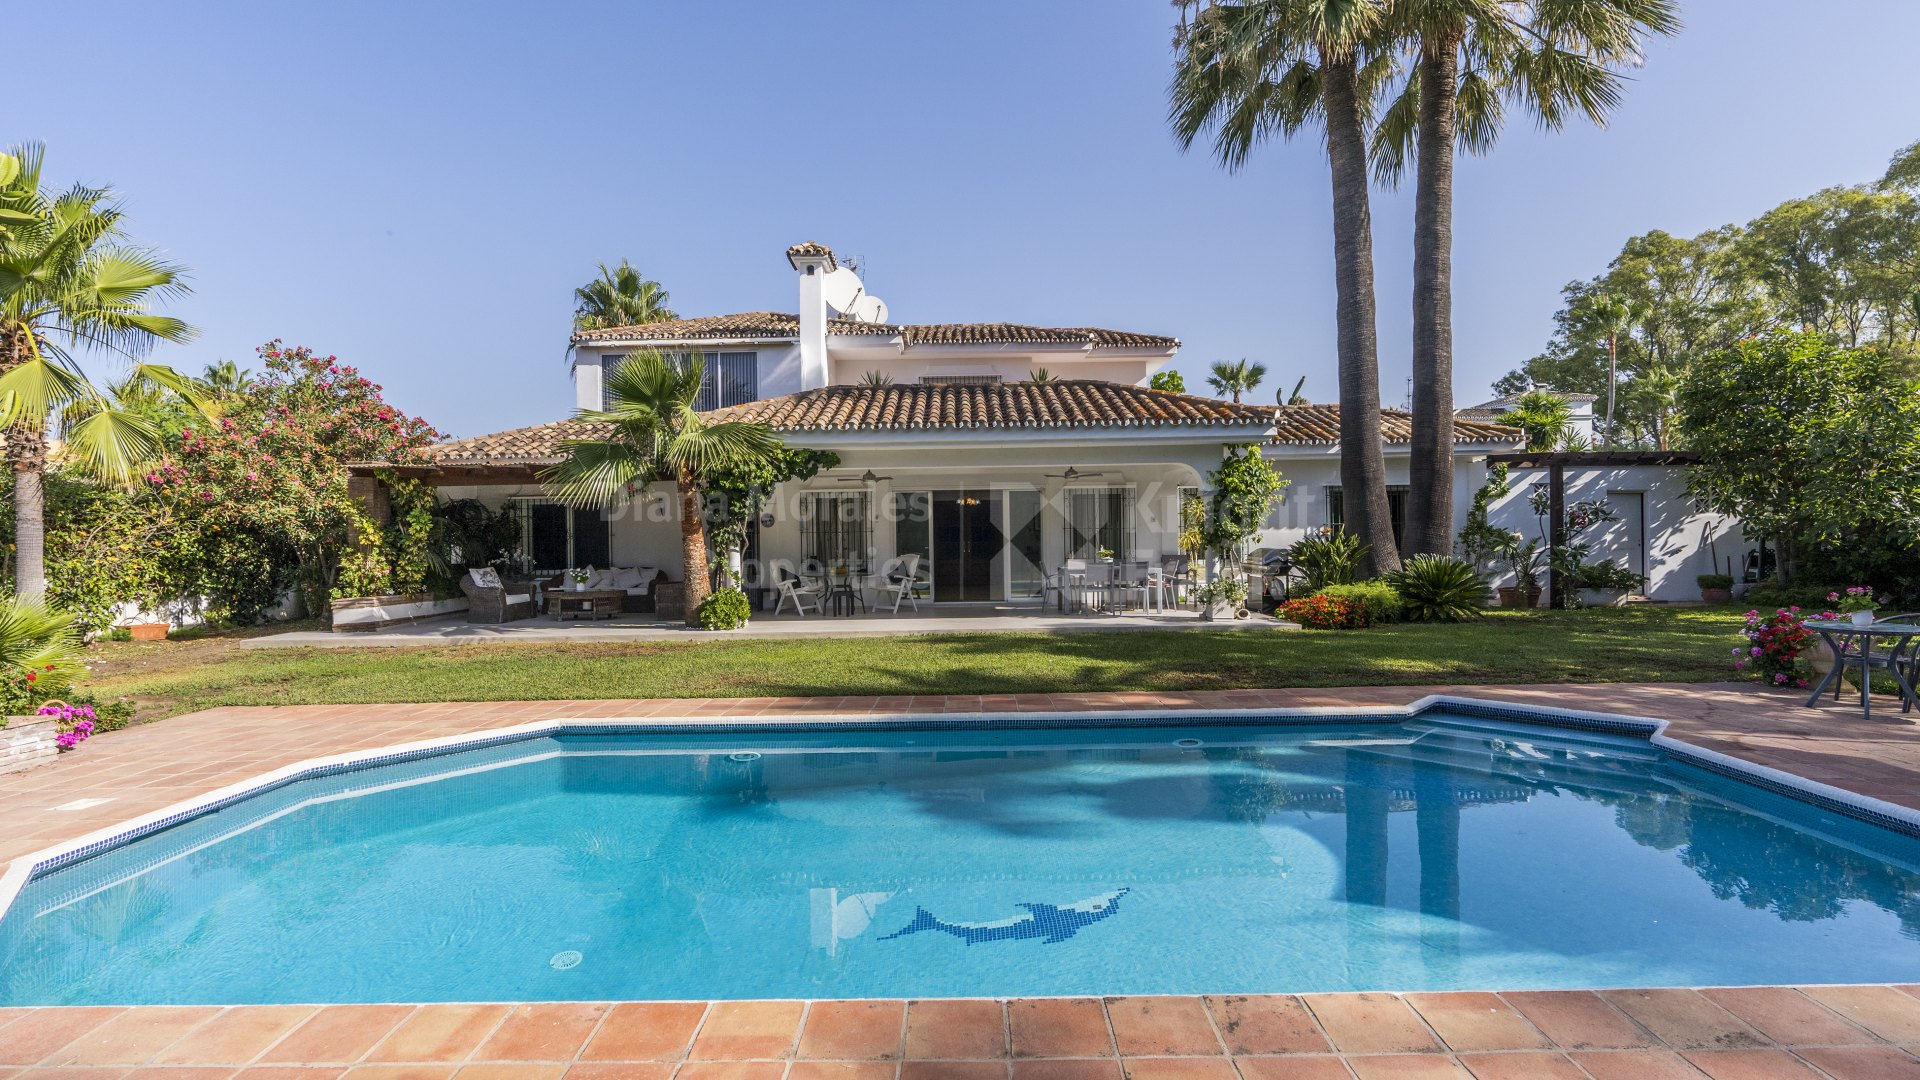 Paraiso Barronal, Villa with great potential